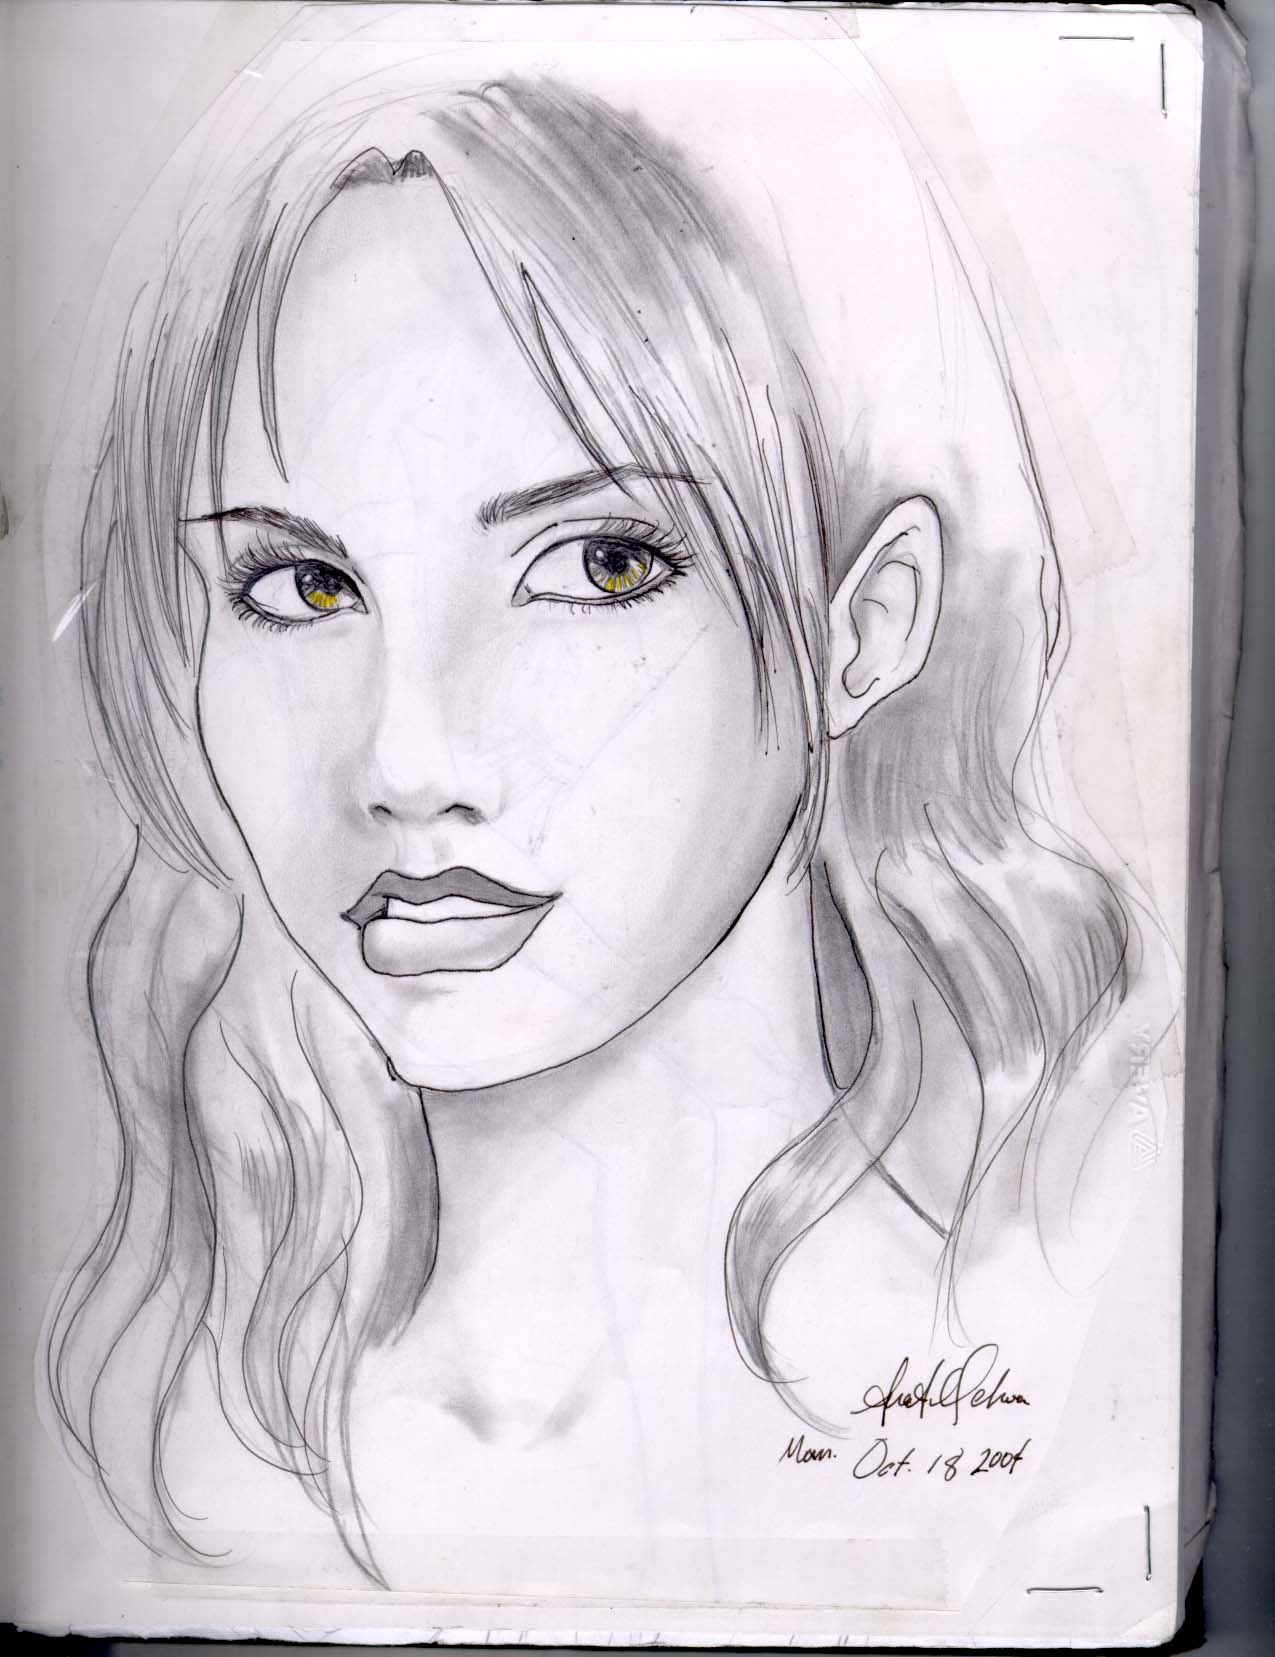 quick sketch of girl by 311chick